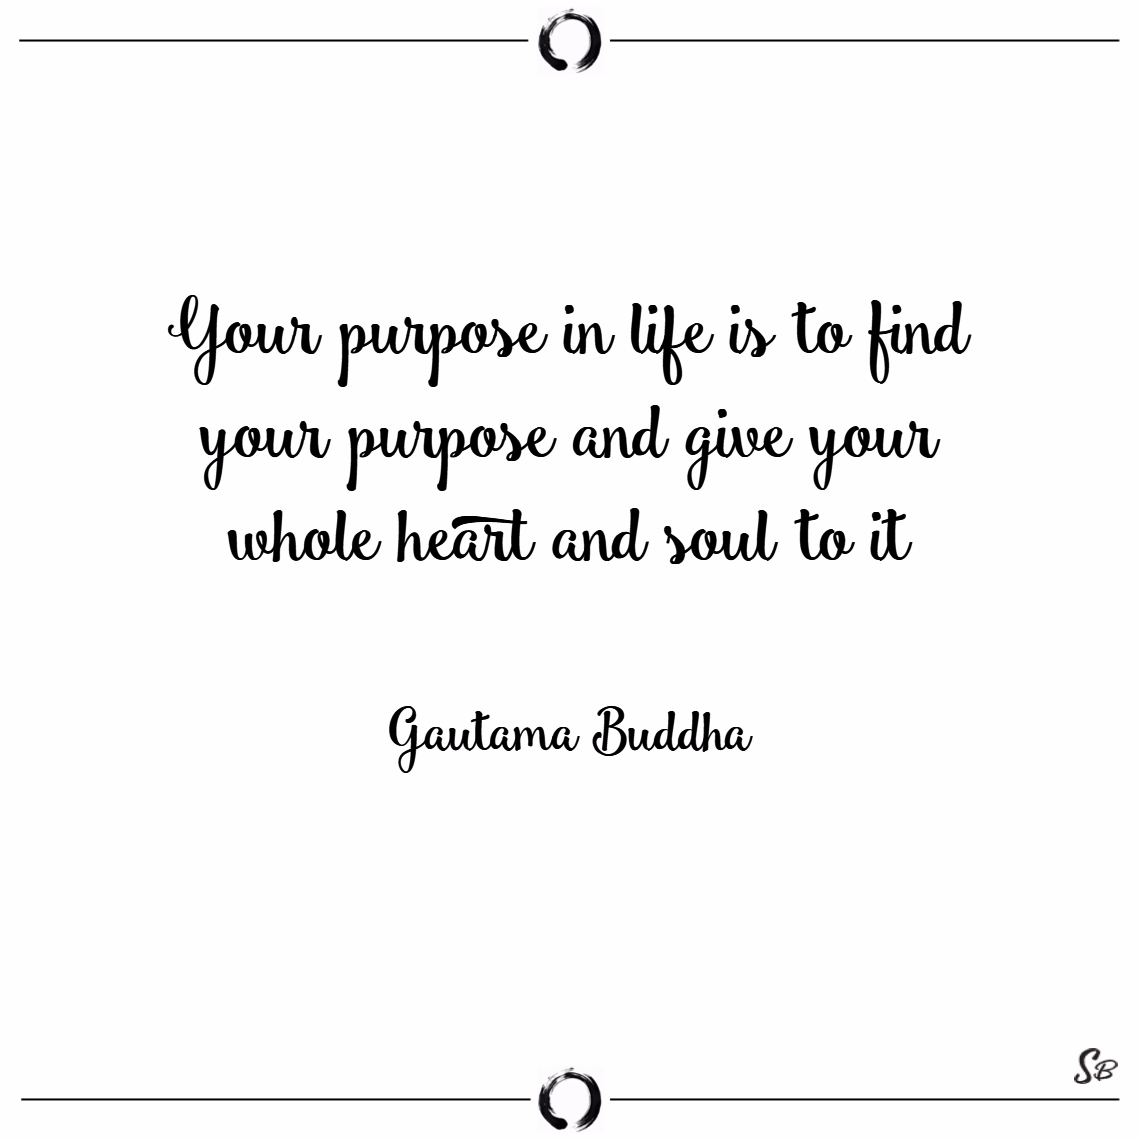 Your purpose in life is to find your purpose and give your whole heart and soul to it. – gautama buddha